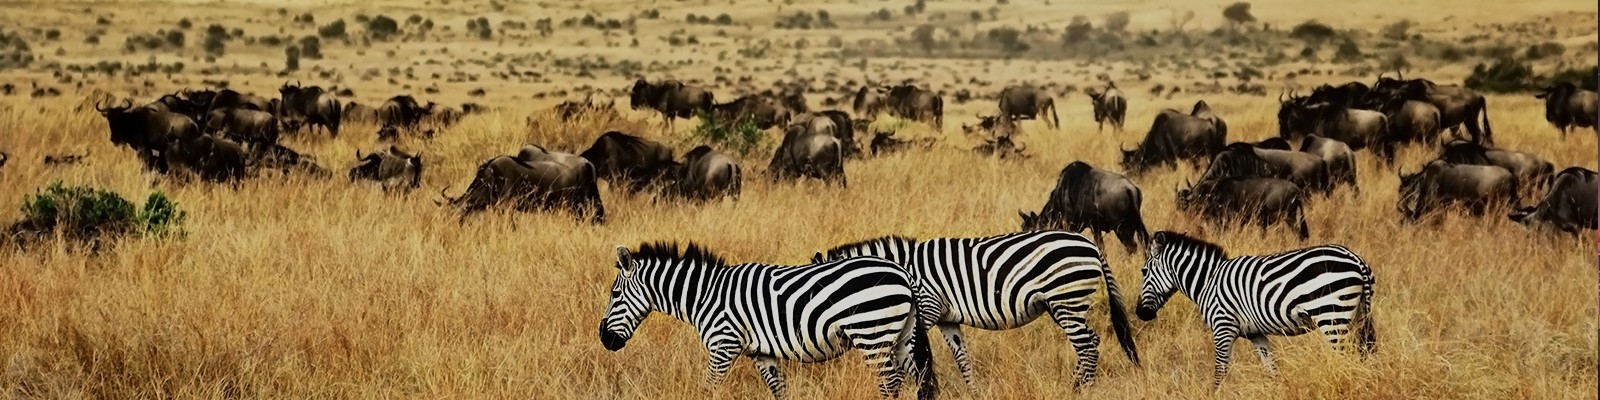 kenya safari honeymoon packages header